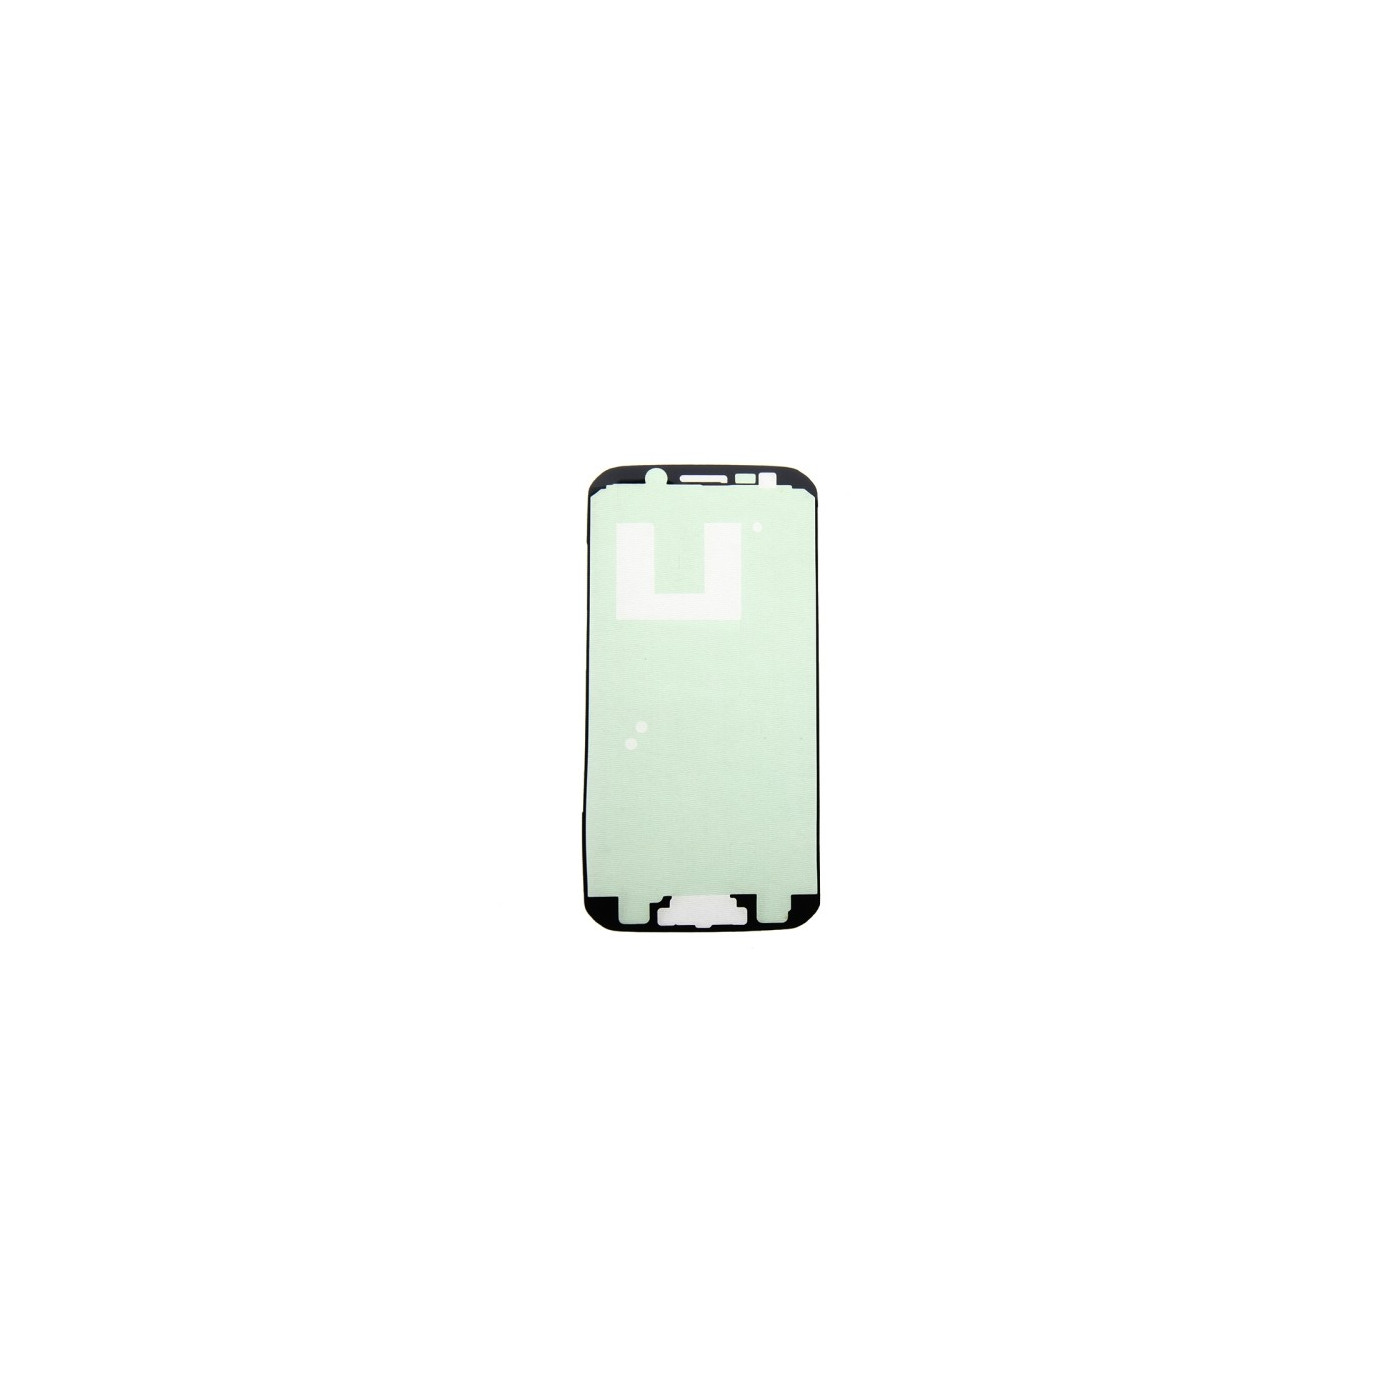 Double-sided glass for Samsung Galaxy S6 Edge G925